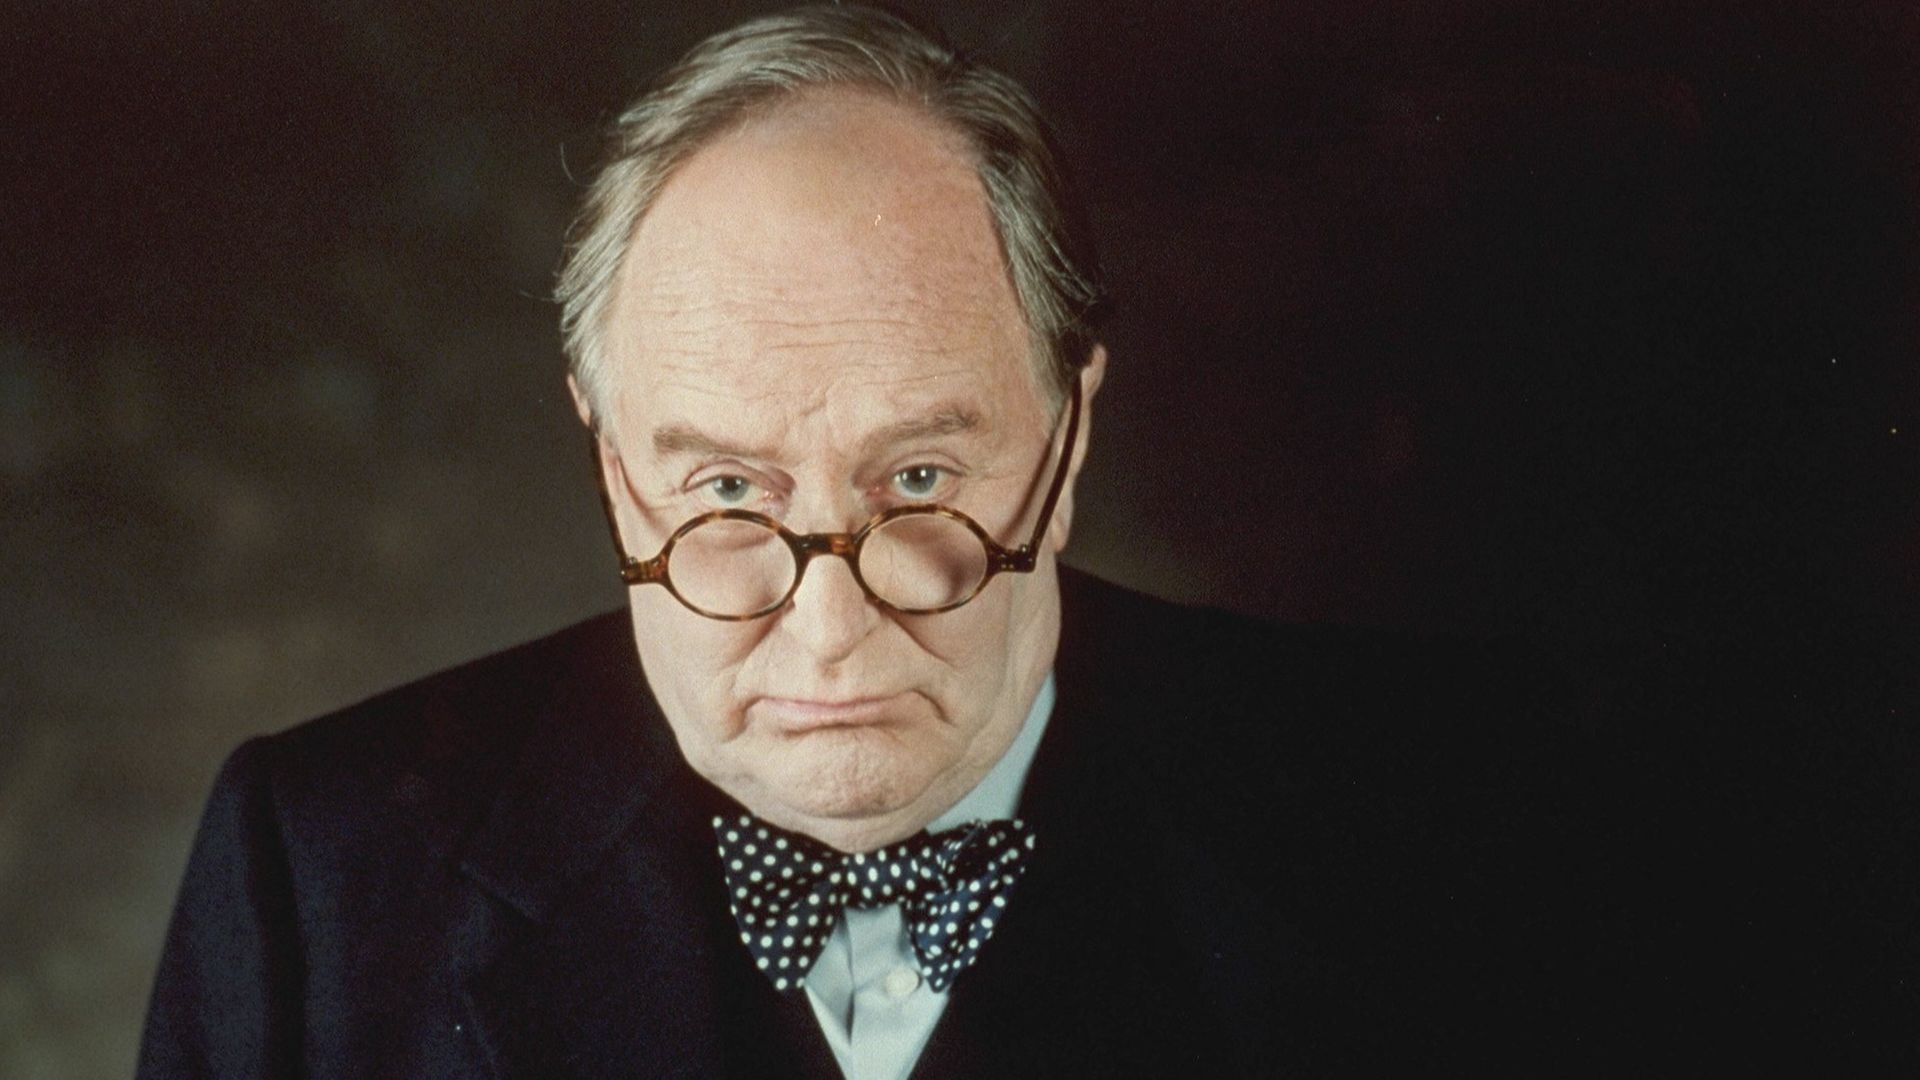 Portrait of Robert Hardy as Winston Churchill - Credit: Sygma via Getty Images